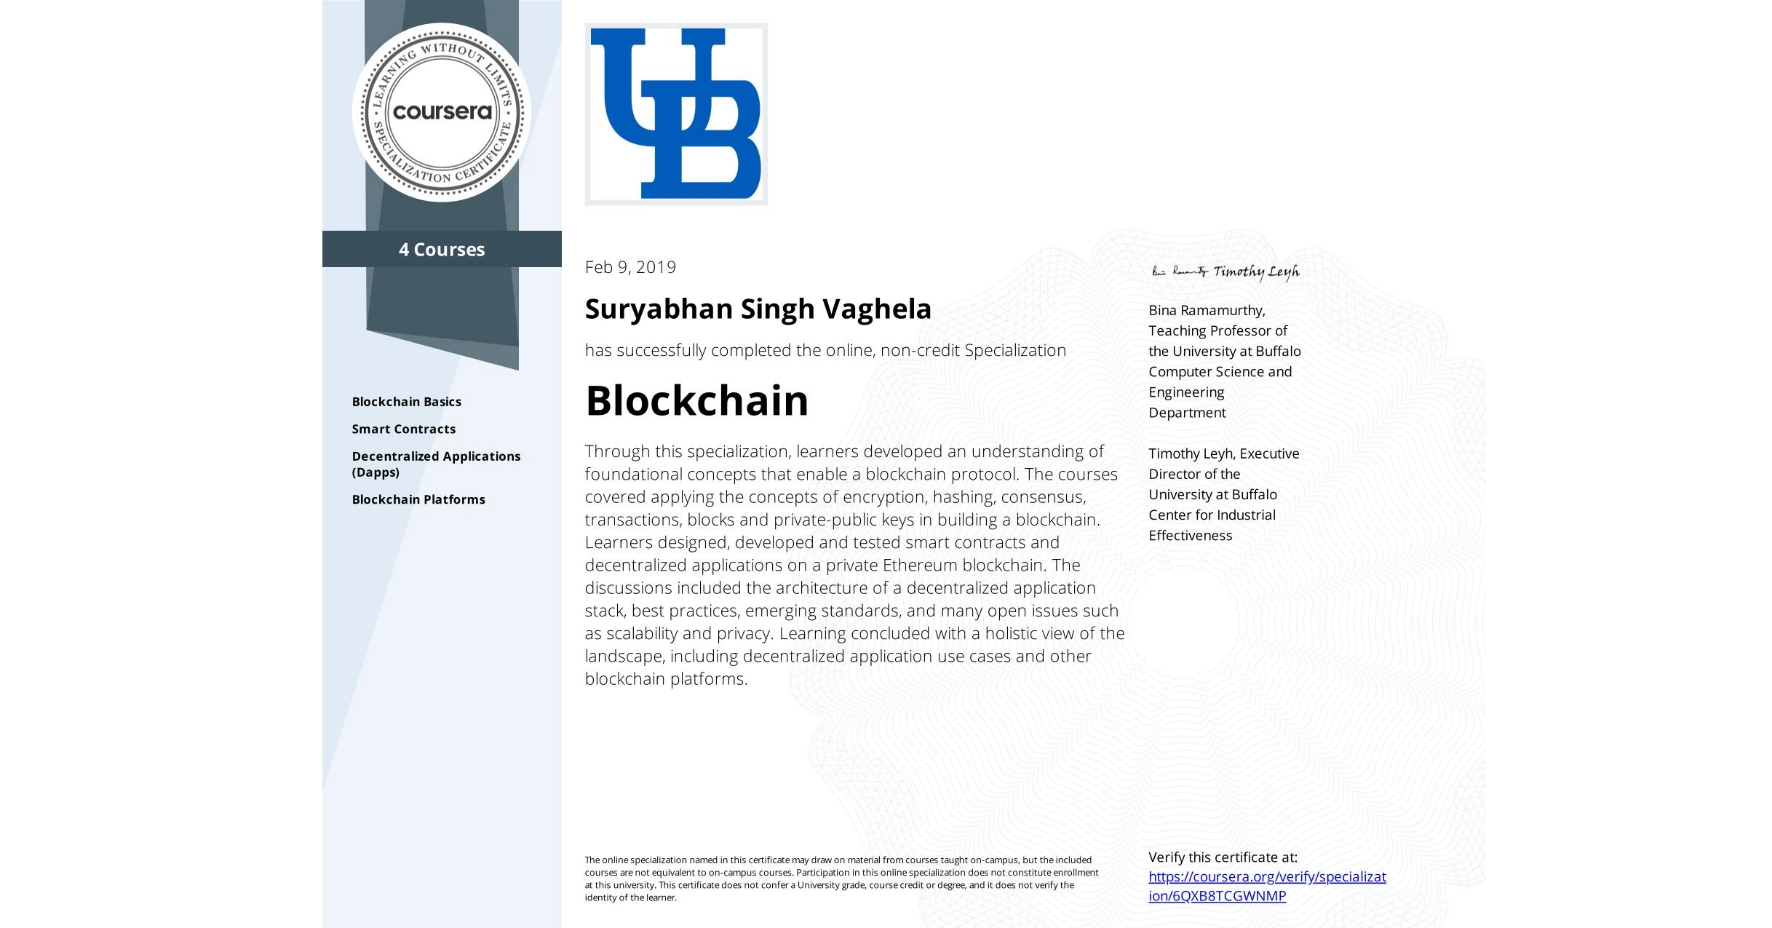 View certificate for Suryabhan Singh Vaghela, Blockchain, offered through Coursera. Through this specialization, learners developed an understanding of foundational concepts that enable a blockchain protocol. The courses covered applying the concepts of encryption, hashing, consensus, transactions, blocks and private-public keys in building a blockchain. Learners designed, developed and tested smart contracts and decentralized applications on a private Ethereum blockchain. The discussions included the architecture of a decentralized application stack, best practices, emerging standards, and many open issues such as scalability and privacy. Learning concluded with a holistic view of the landscape, including decentralized application use cases and other blockchain platforms.